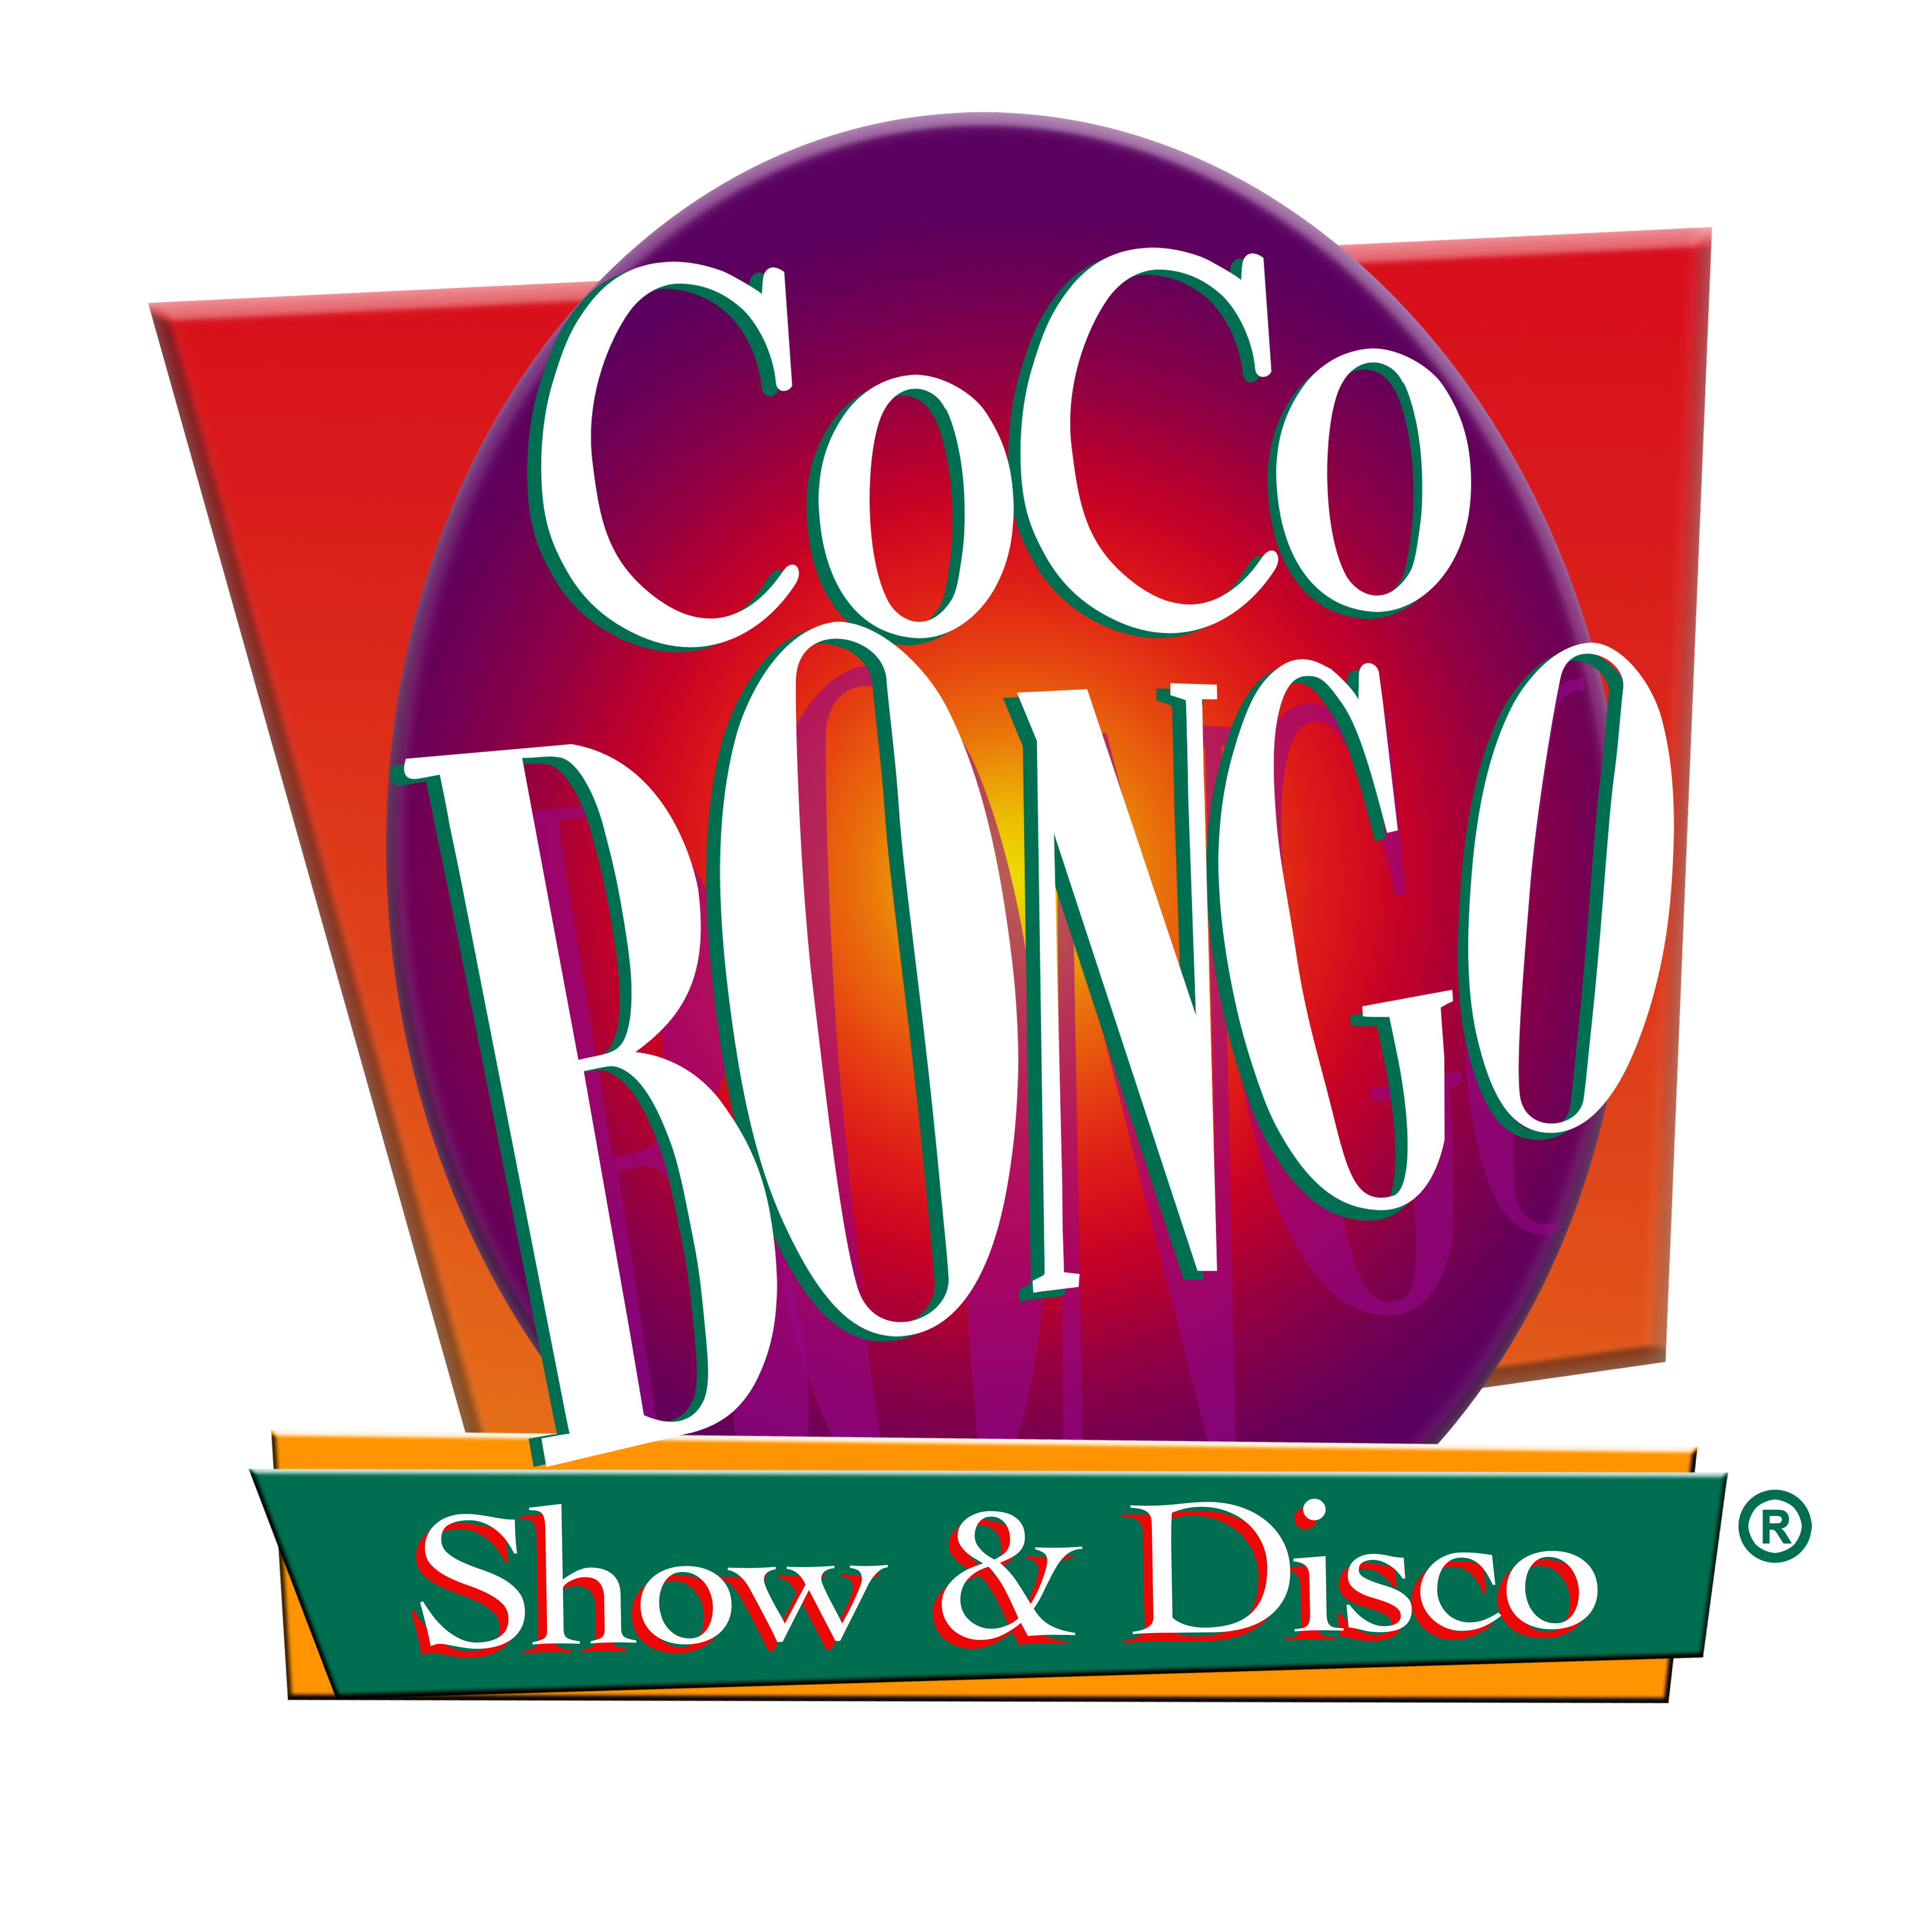 Buy Tickets Coco Bongo Show Playa del Carmen